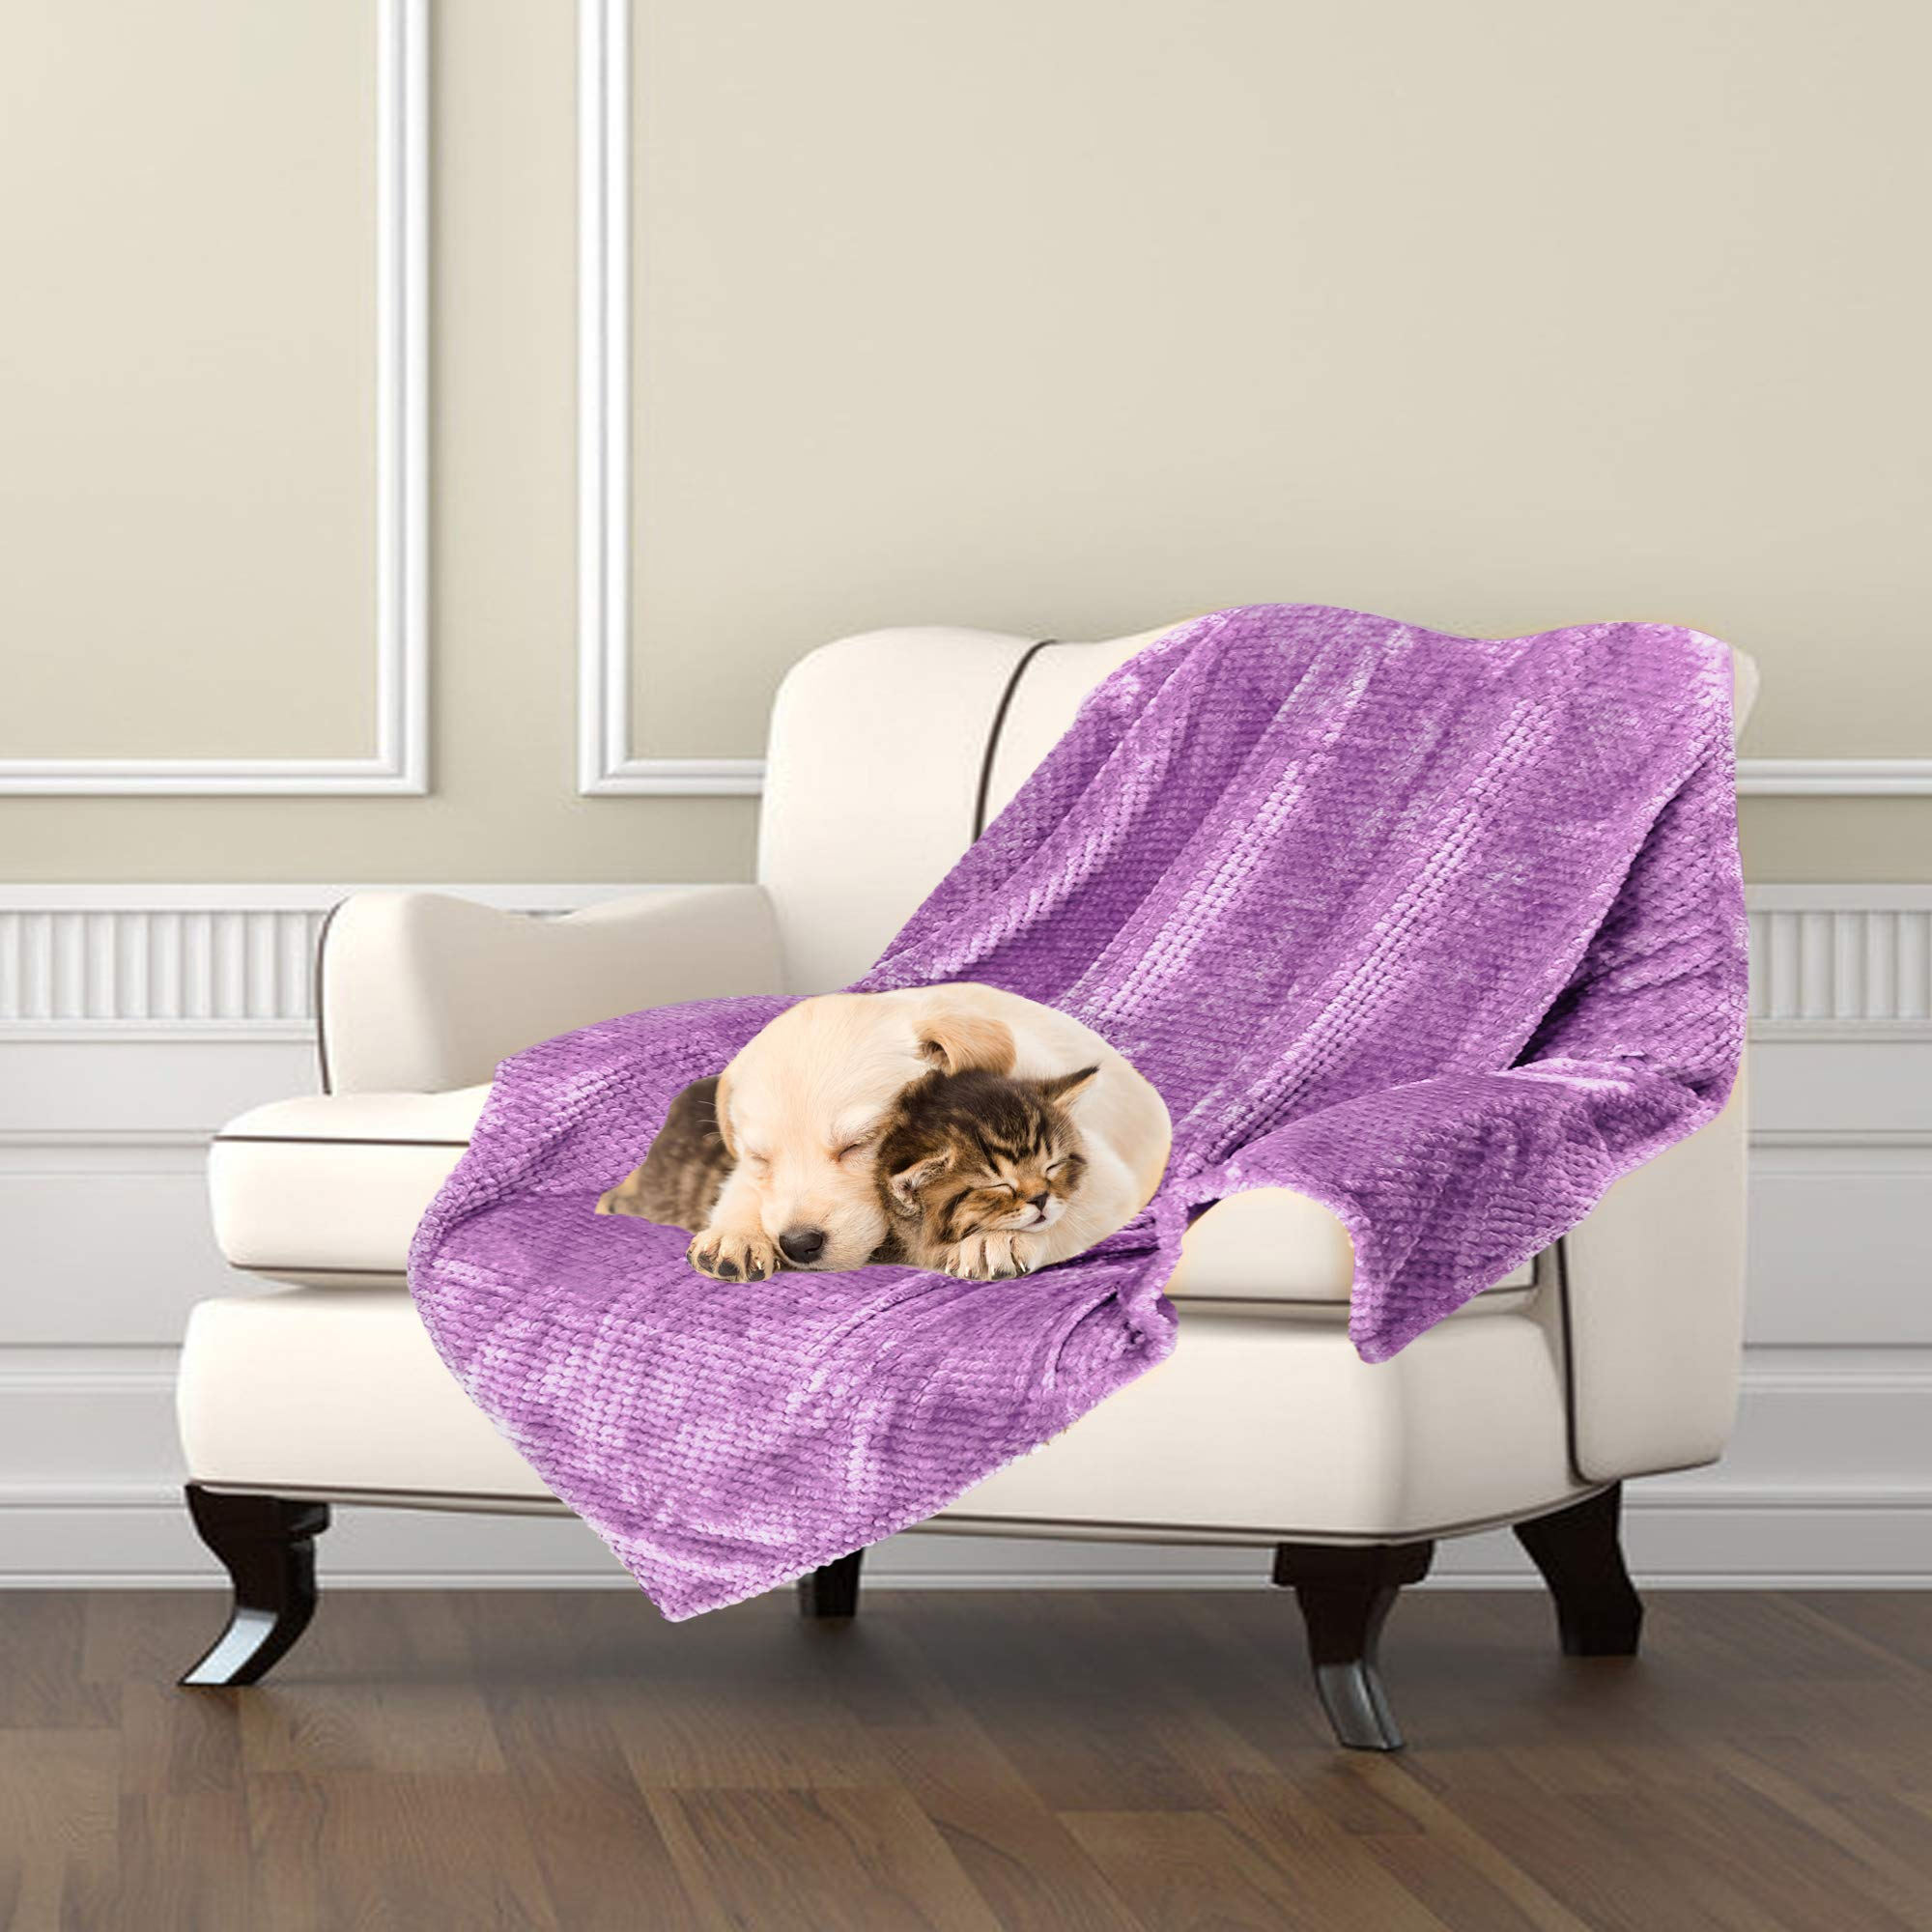 Msicyness Dog Blanket Premium Fleece Fluffy Throw Blankets Soft And Warm Covers For Pets Dogs Cats Large Purple